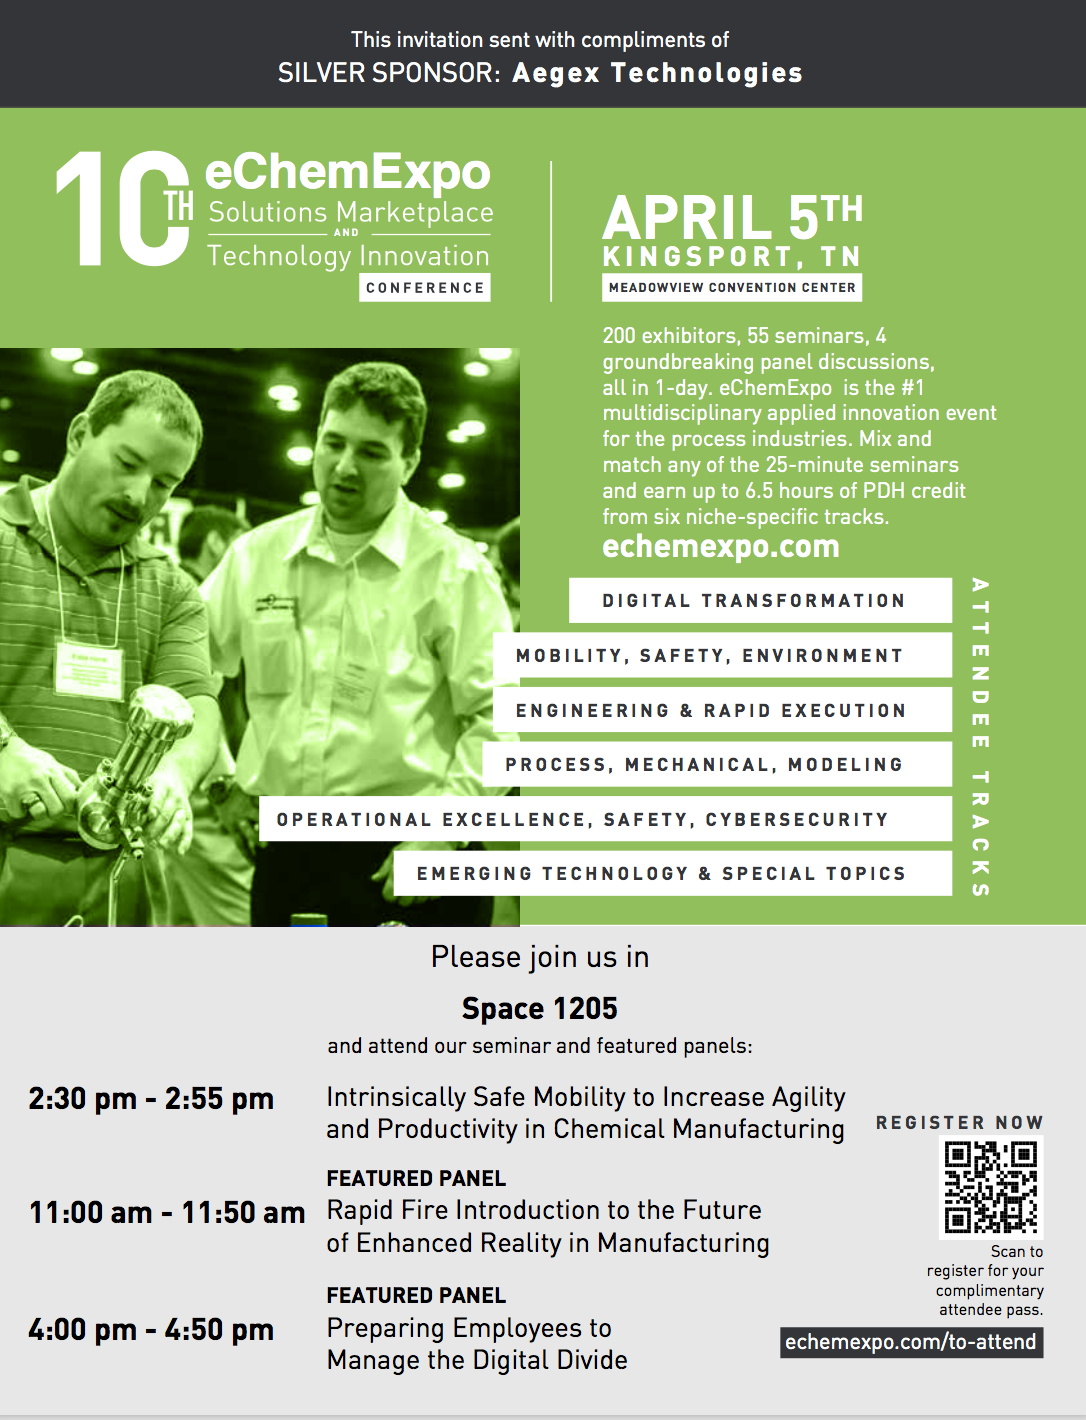 10th eChemExpo: Solutions Marketplace and Technology Innovation Conference.